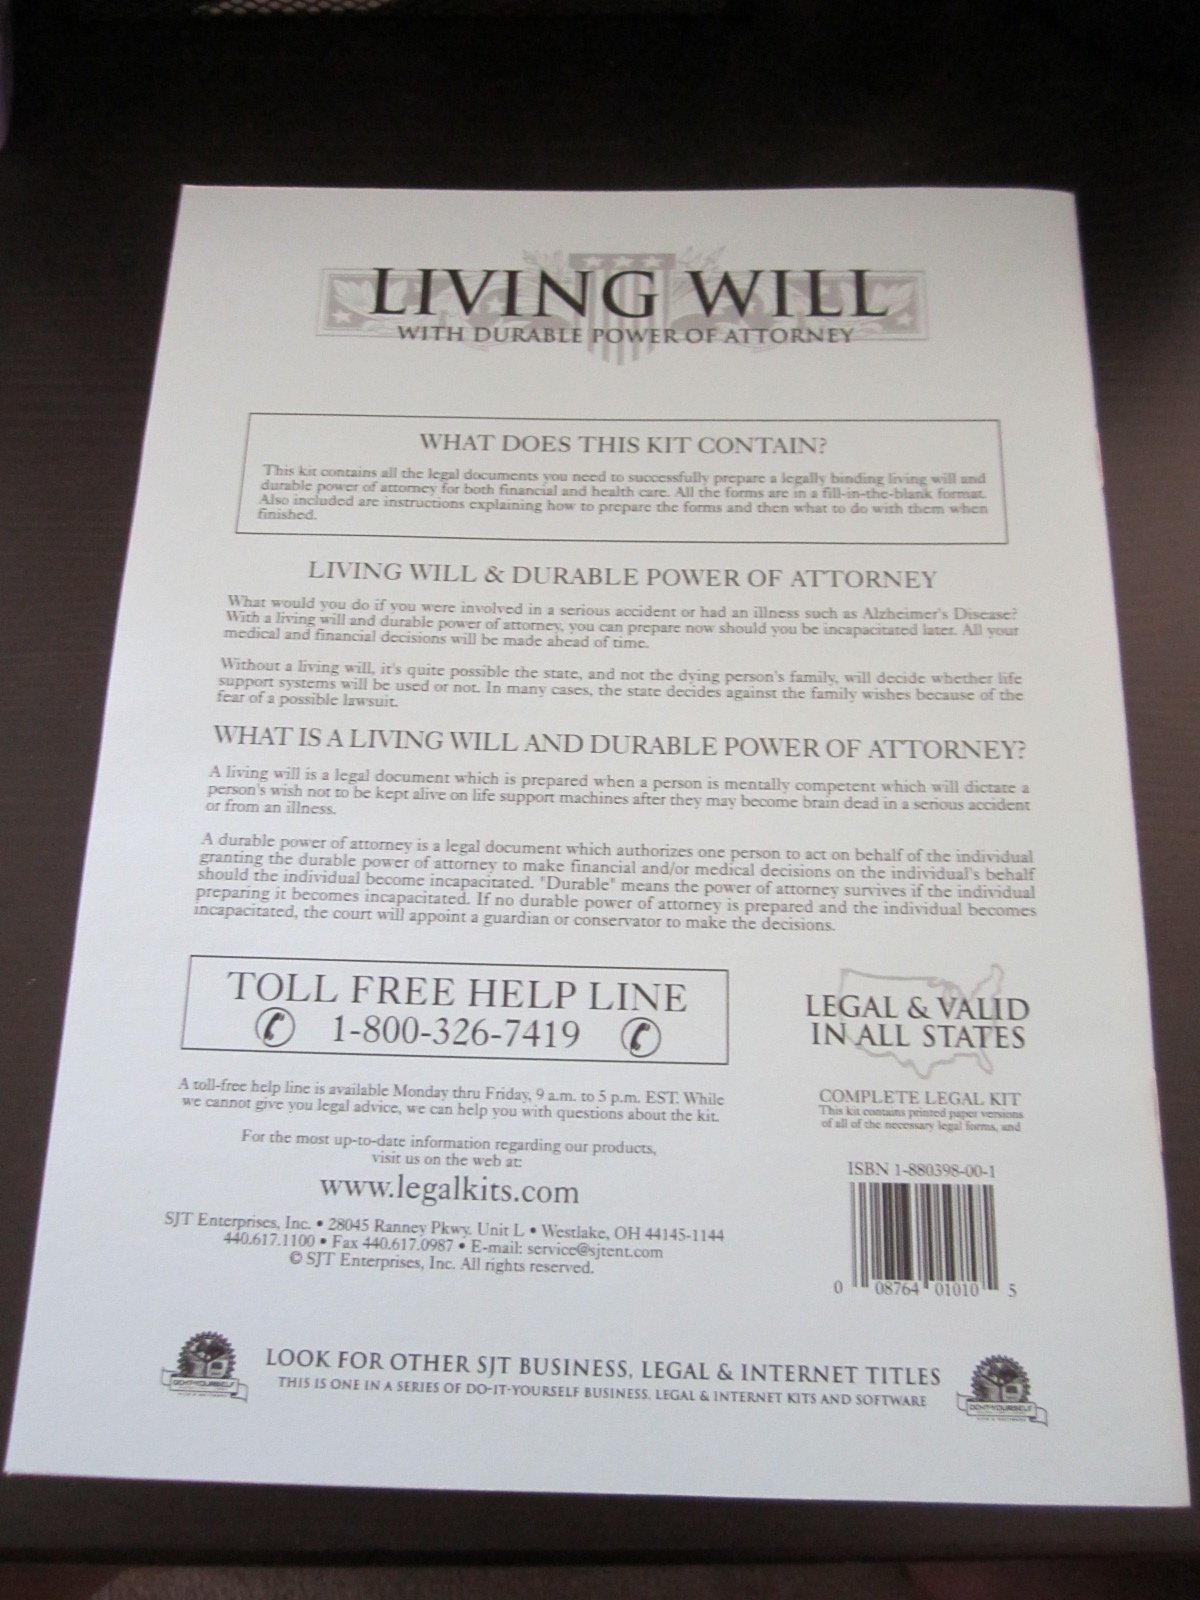 Living will kit do it yourself valid in all 50 states timothy j living will kit do it yourself valid in all 50 states timothy j smith 9781880398005 amazon books solutioingenieria Image collections